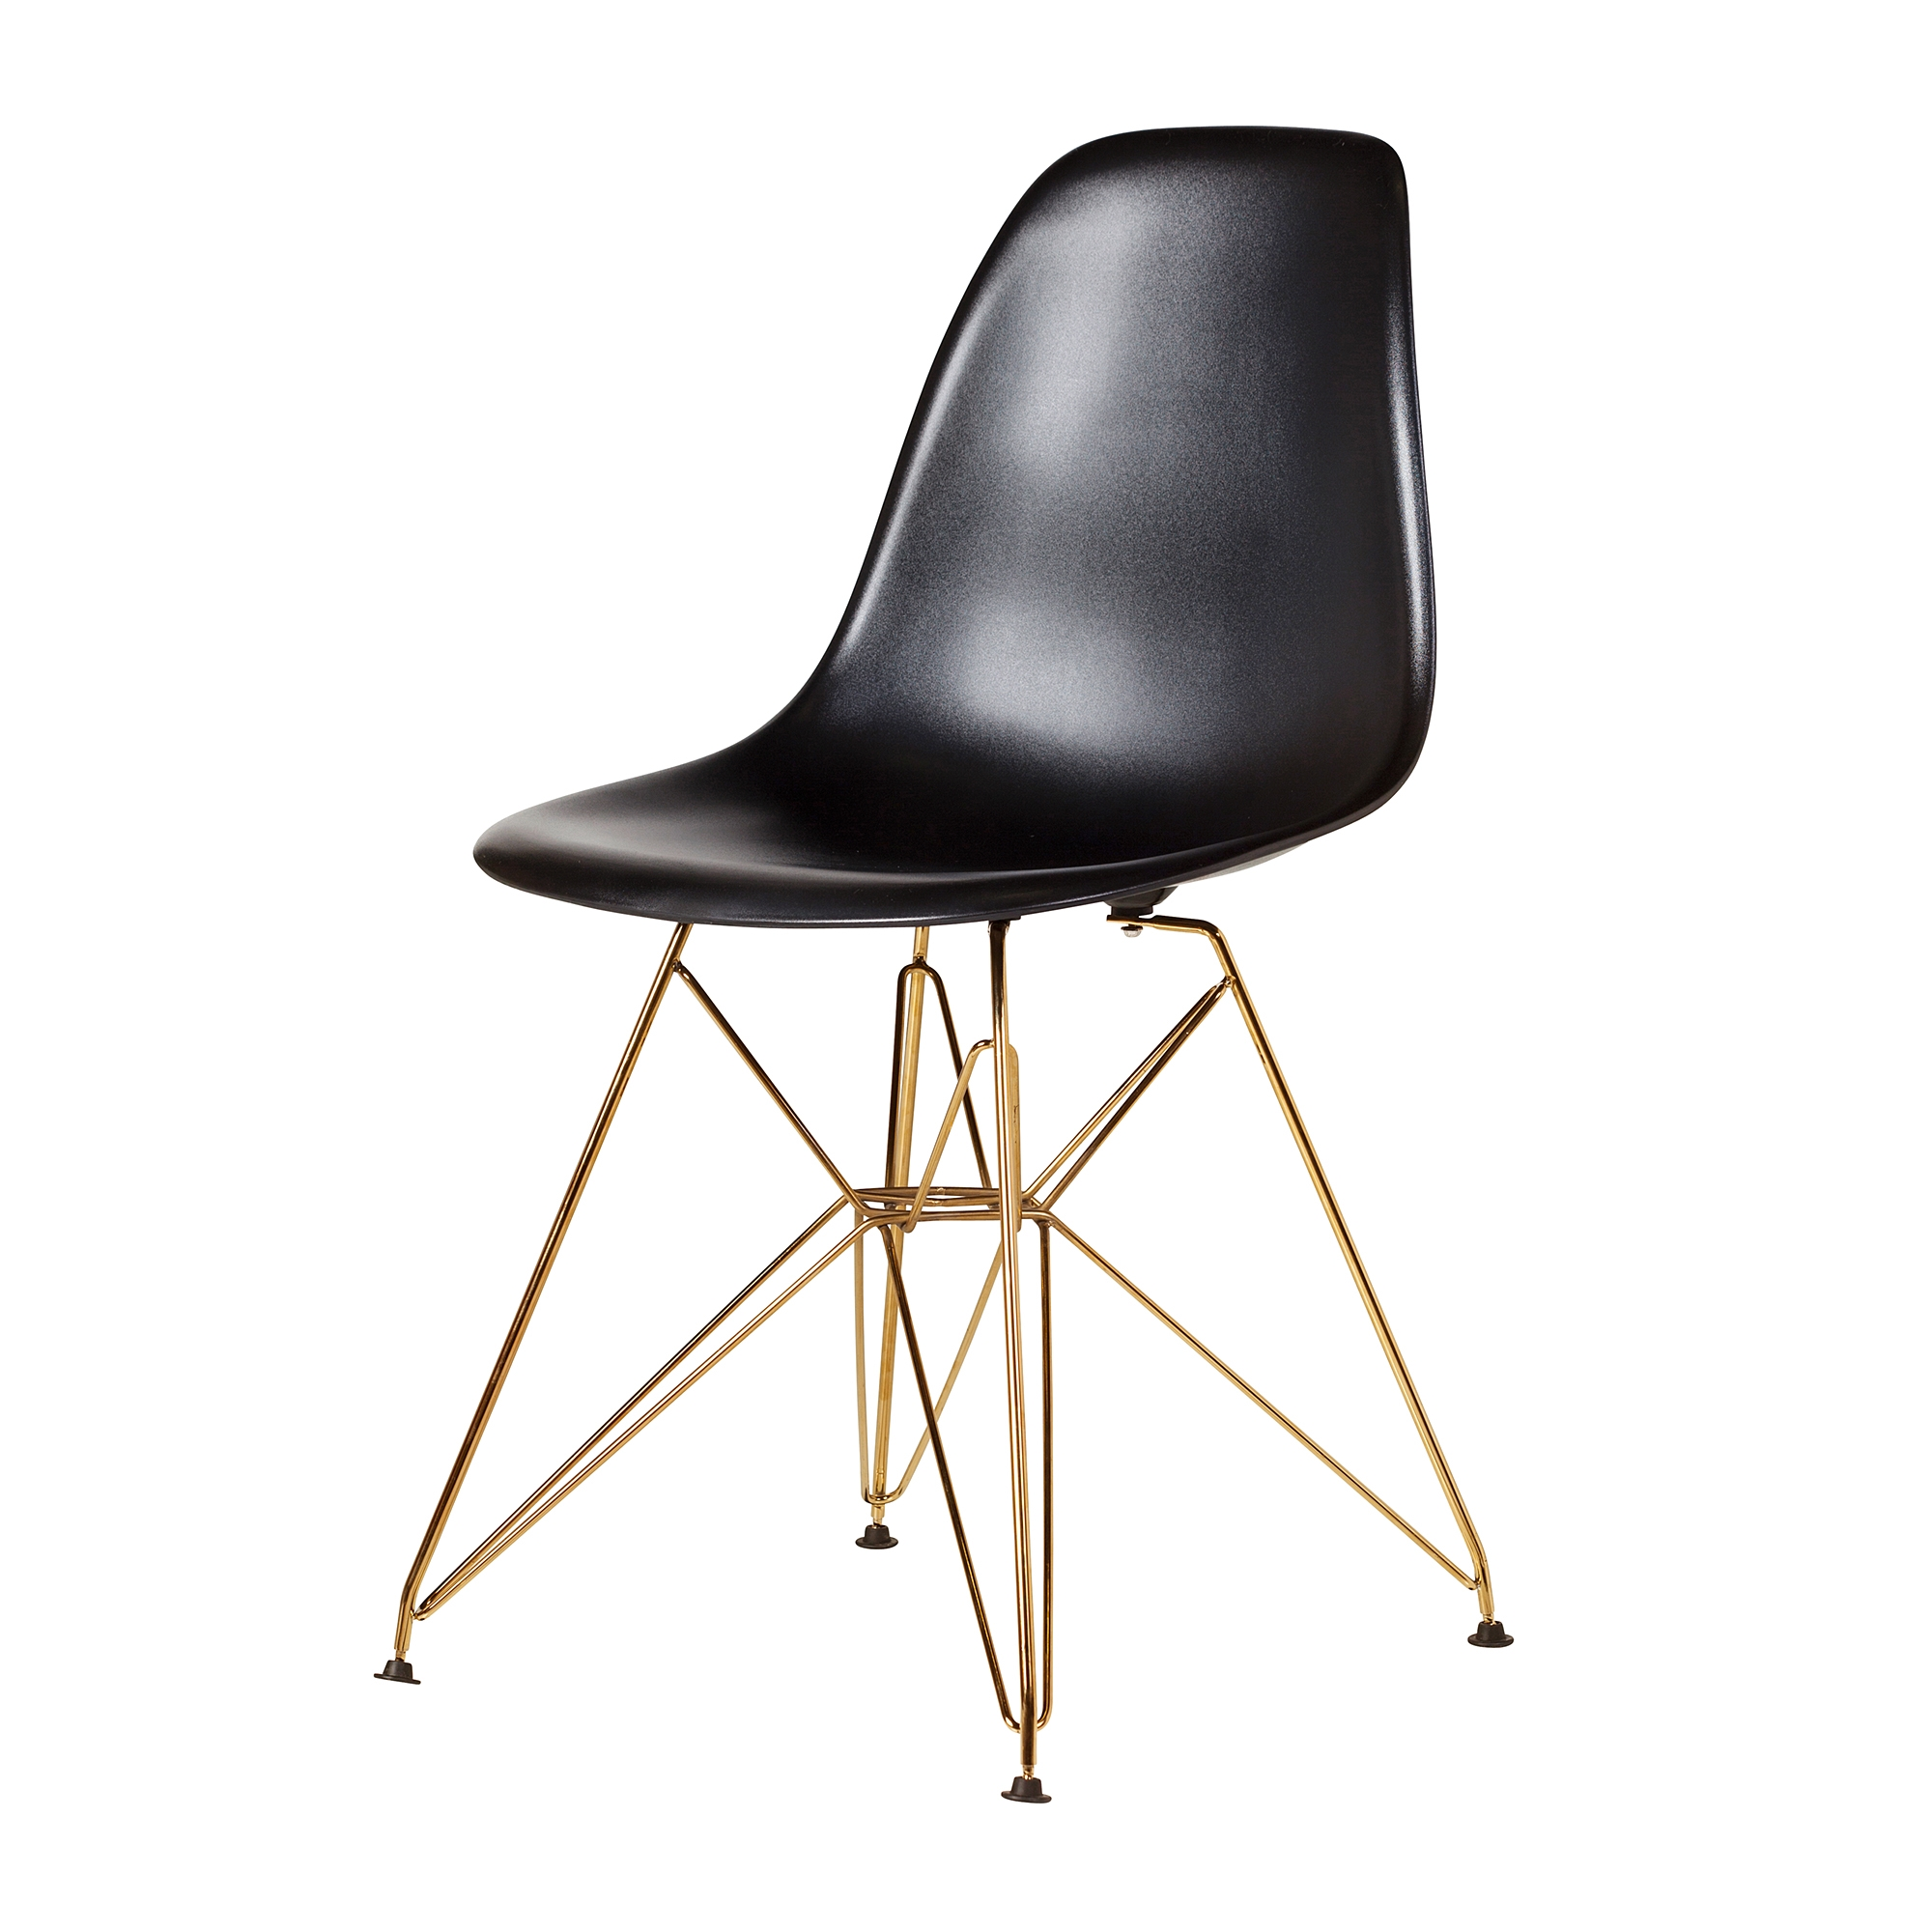 Eames Dsr White Side Chair Eiffel Legs The Khazana Home Austin Furniture